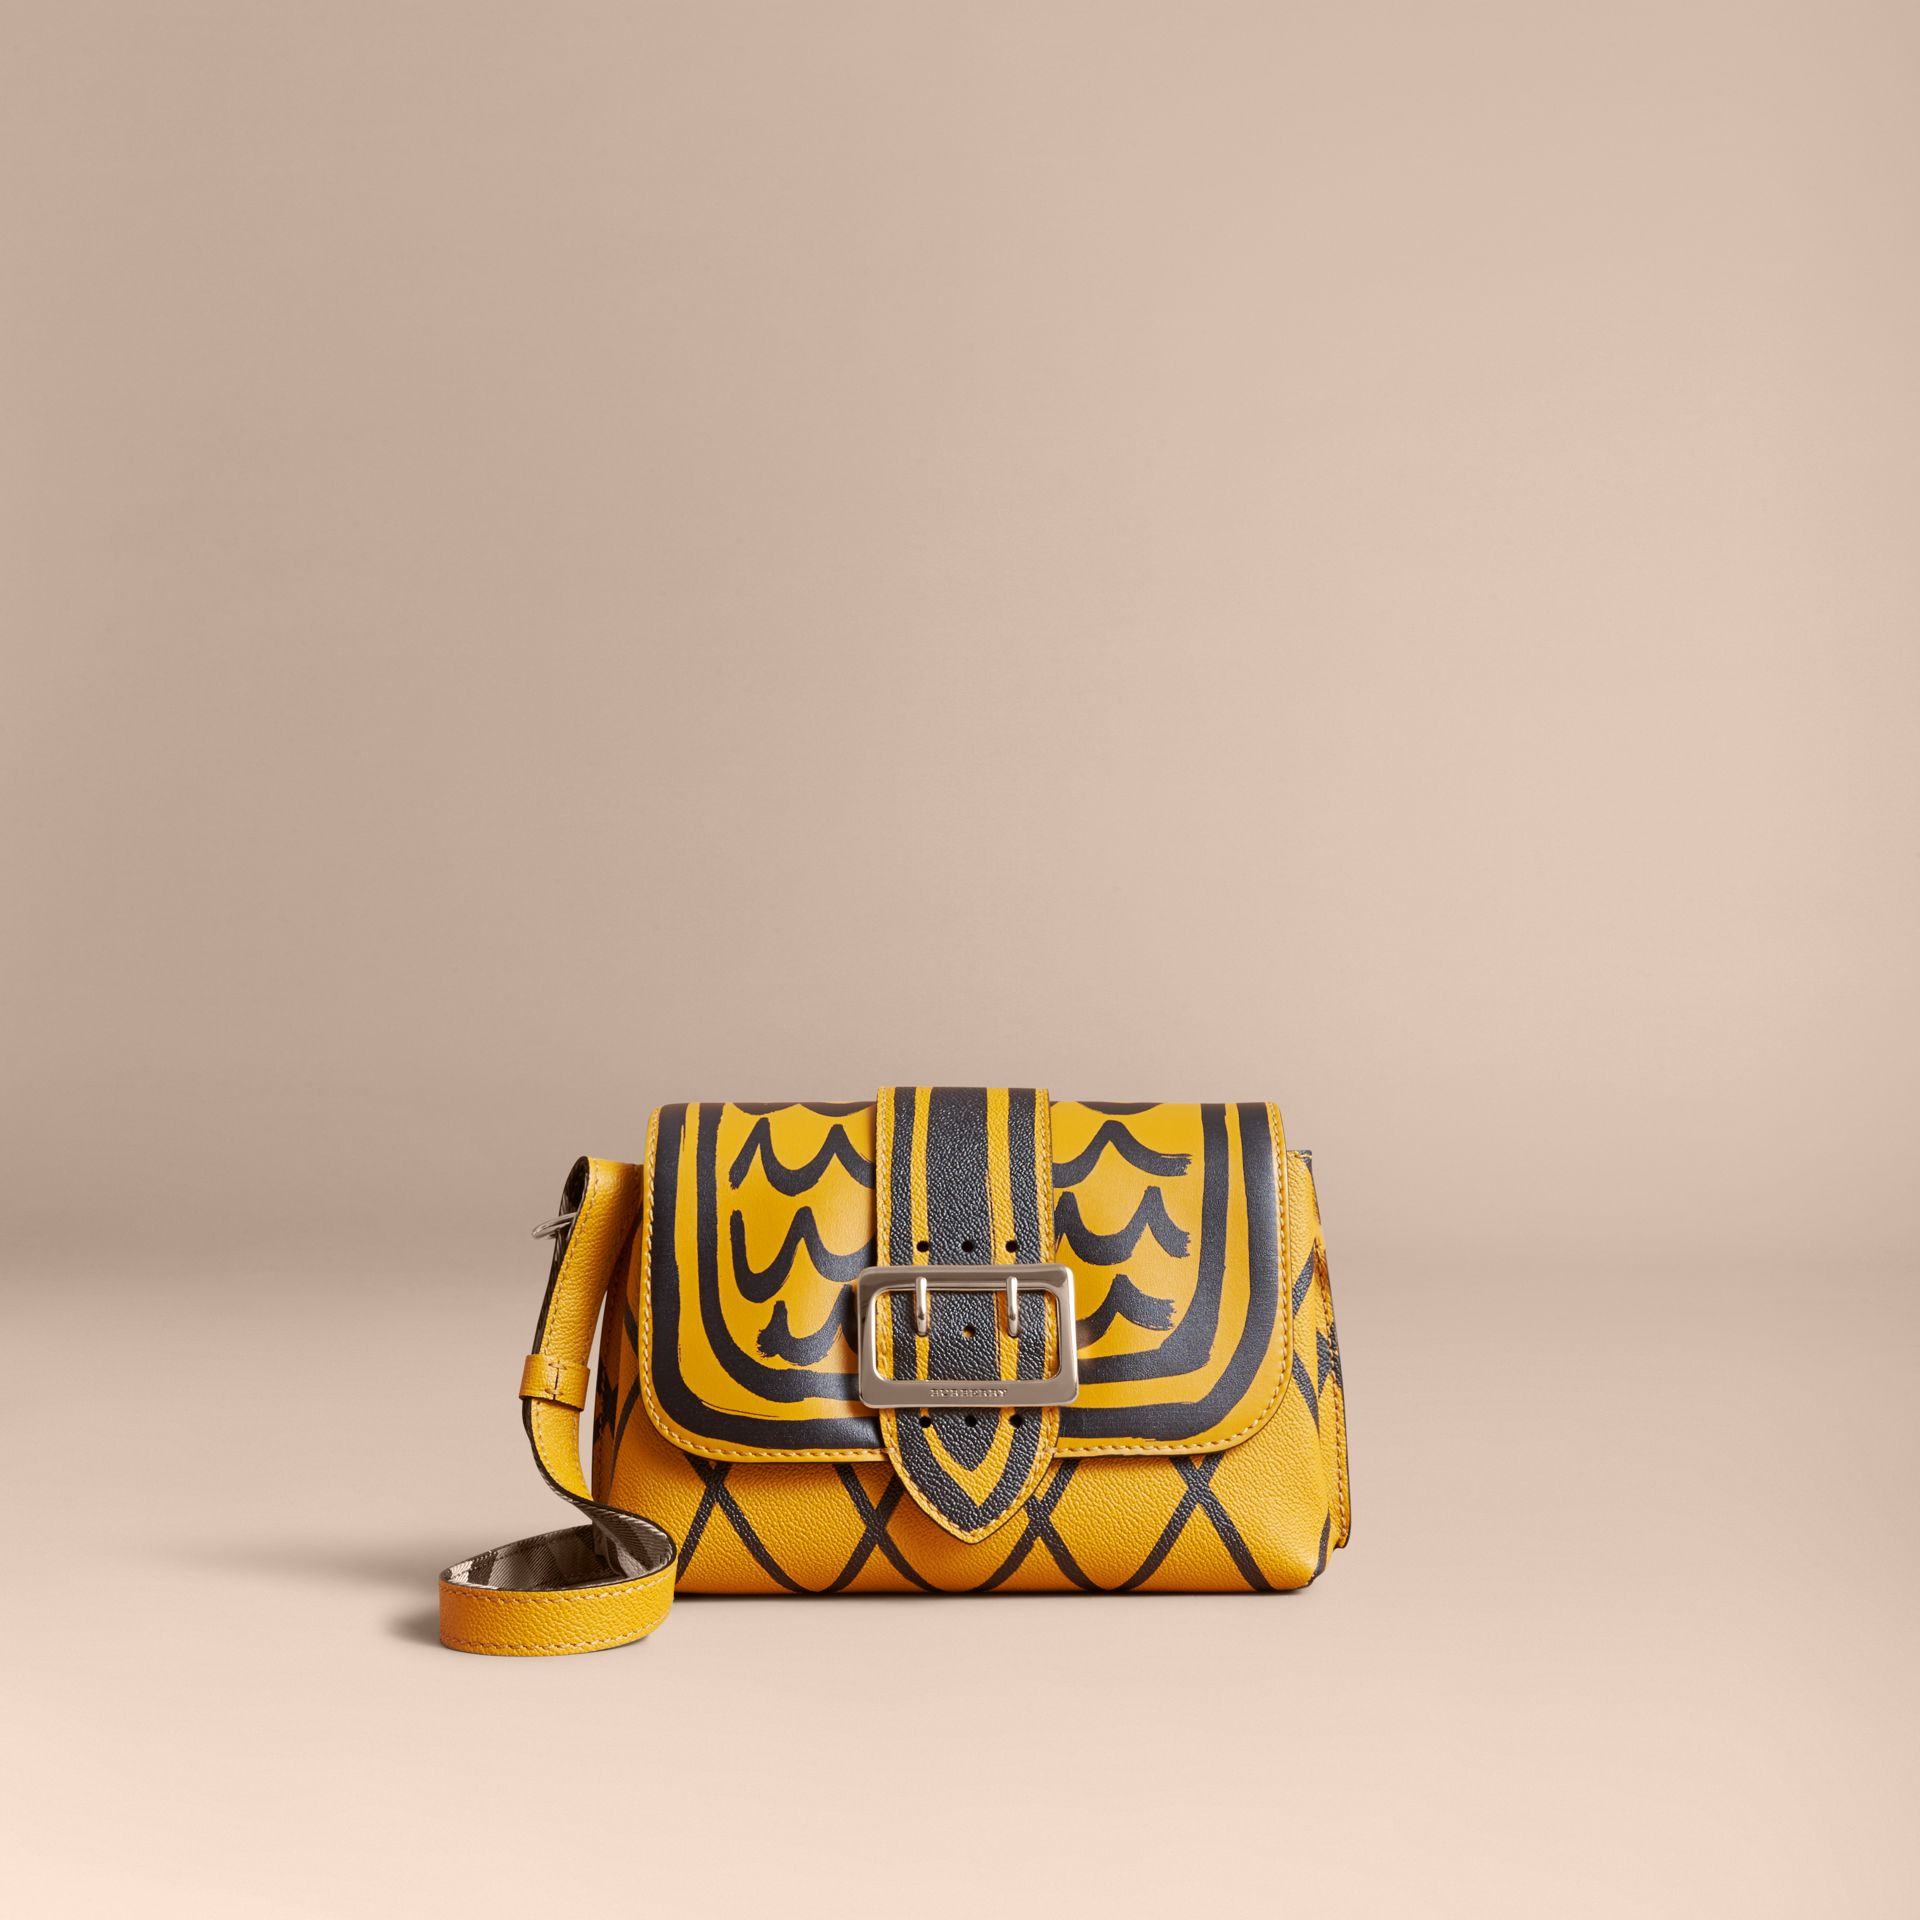 The Buckle Crossbody Bag in Trompe L'oeil Leather in Bright Straw - gallery image 7